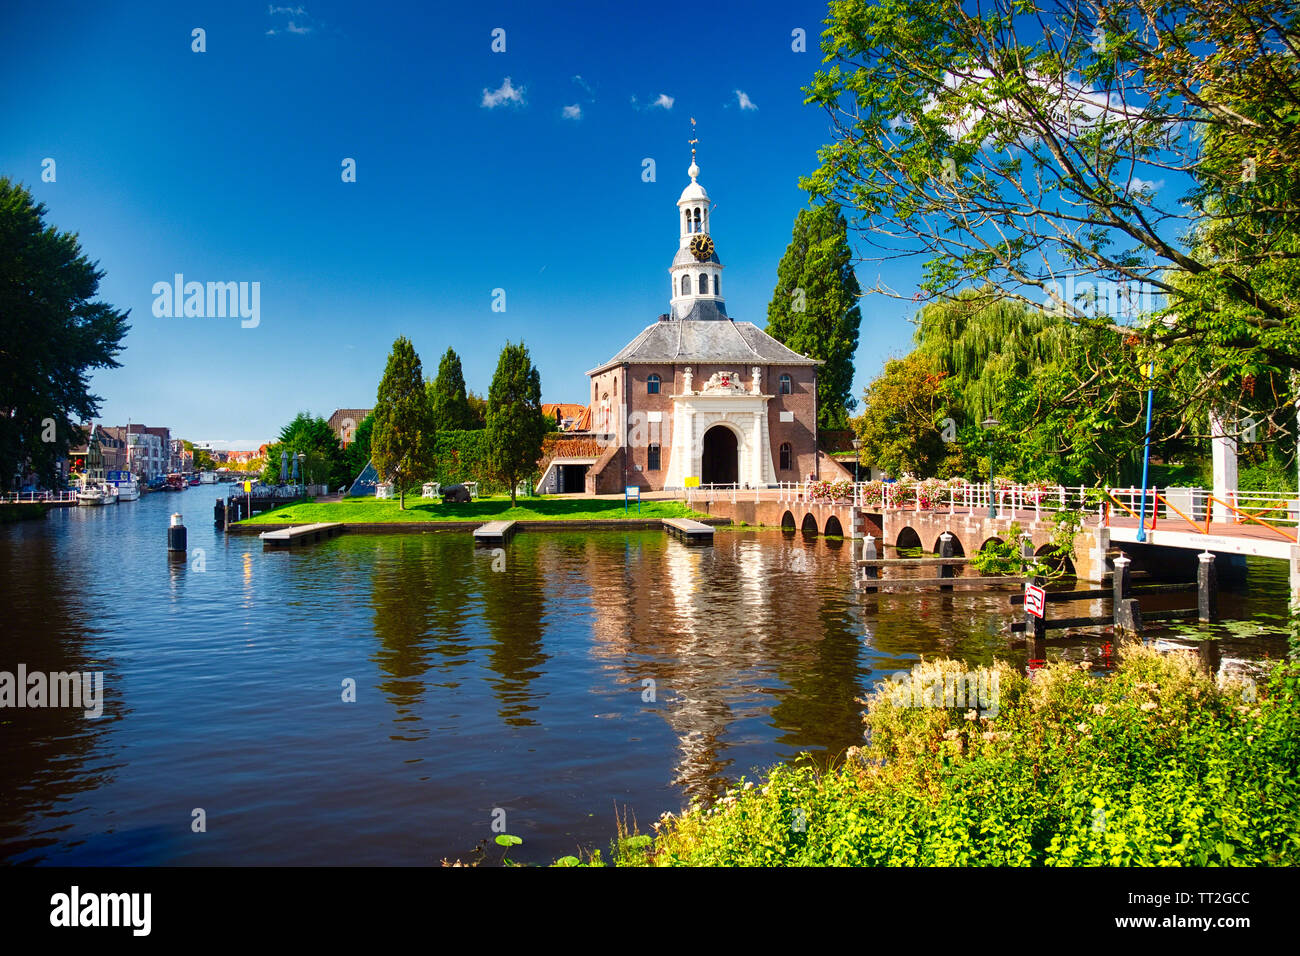 View of one of the Two remaining City gates of leiden the Zijlpoort, South Holland, Netherlands Stock Photo